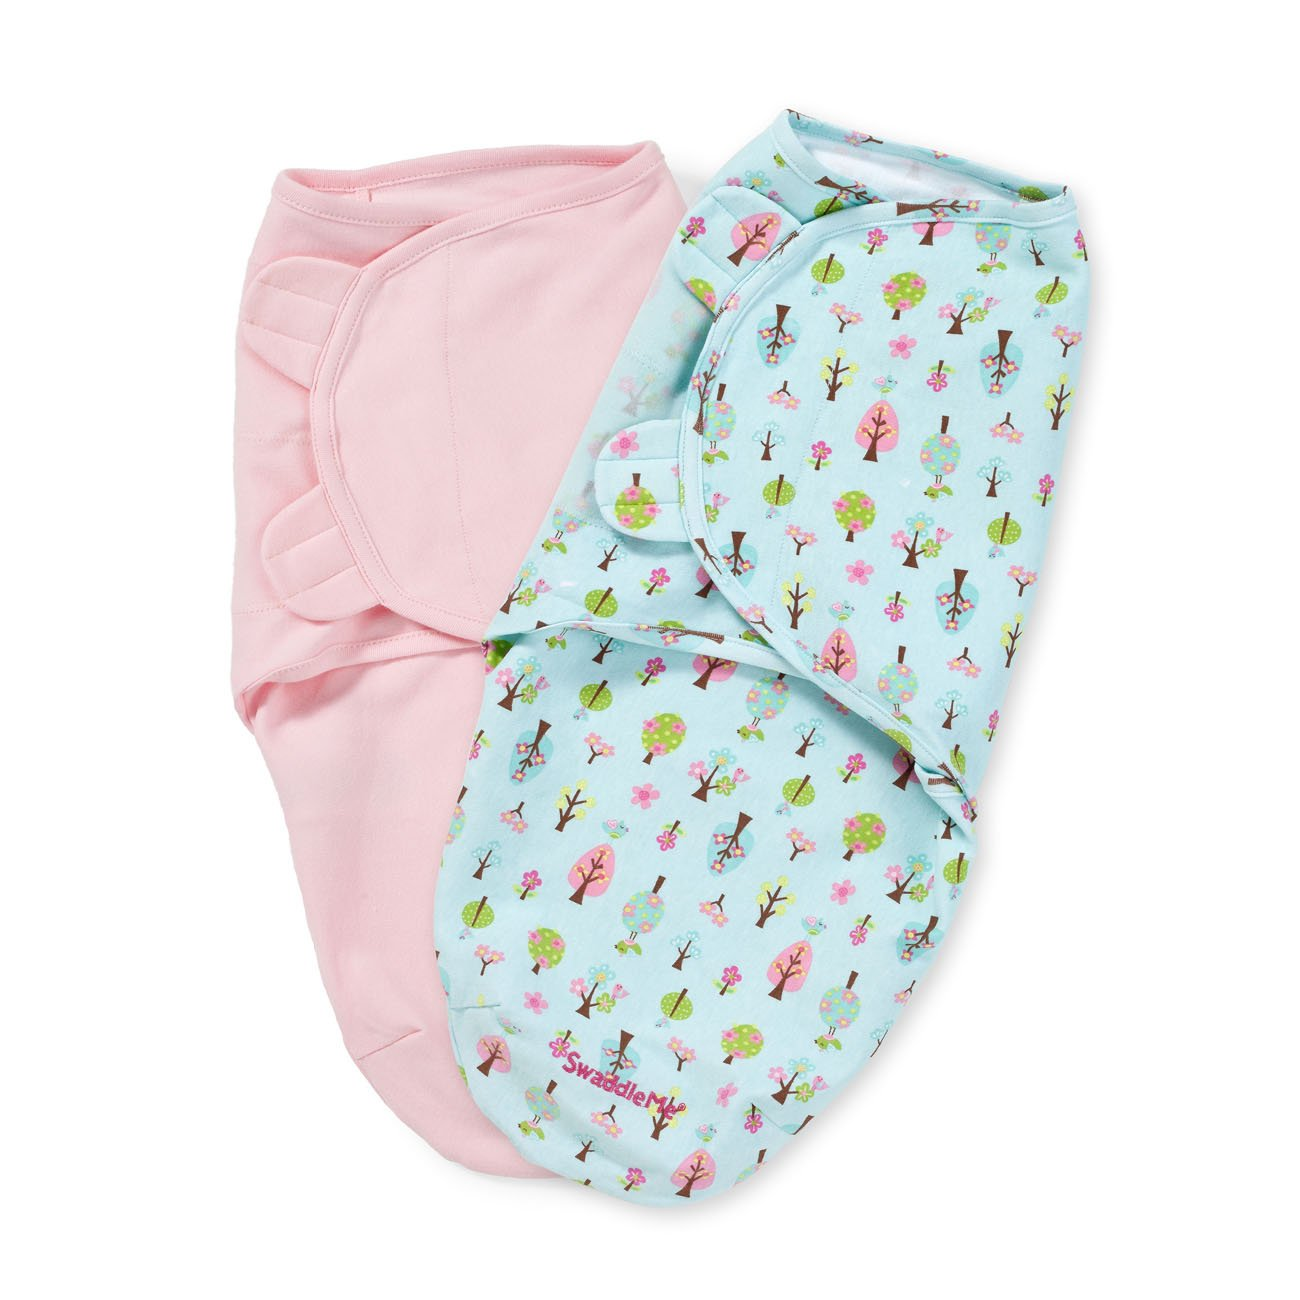 Summer Infant Swaddleme Blankets